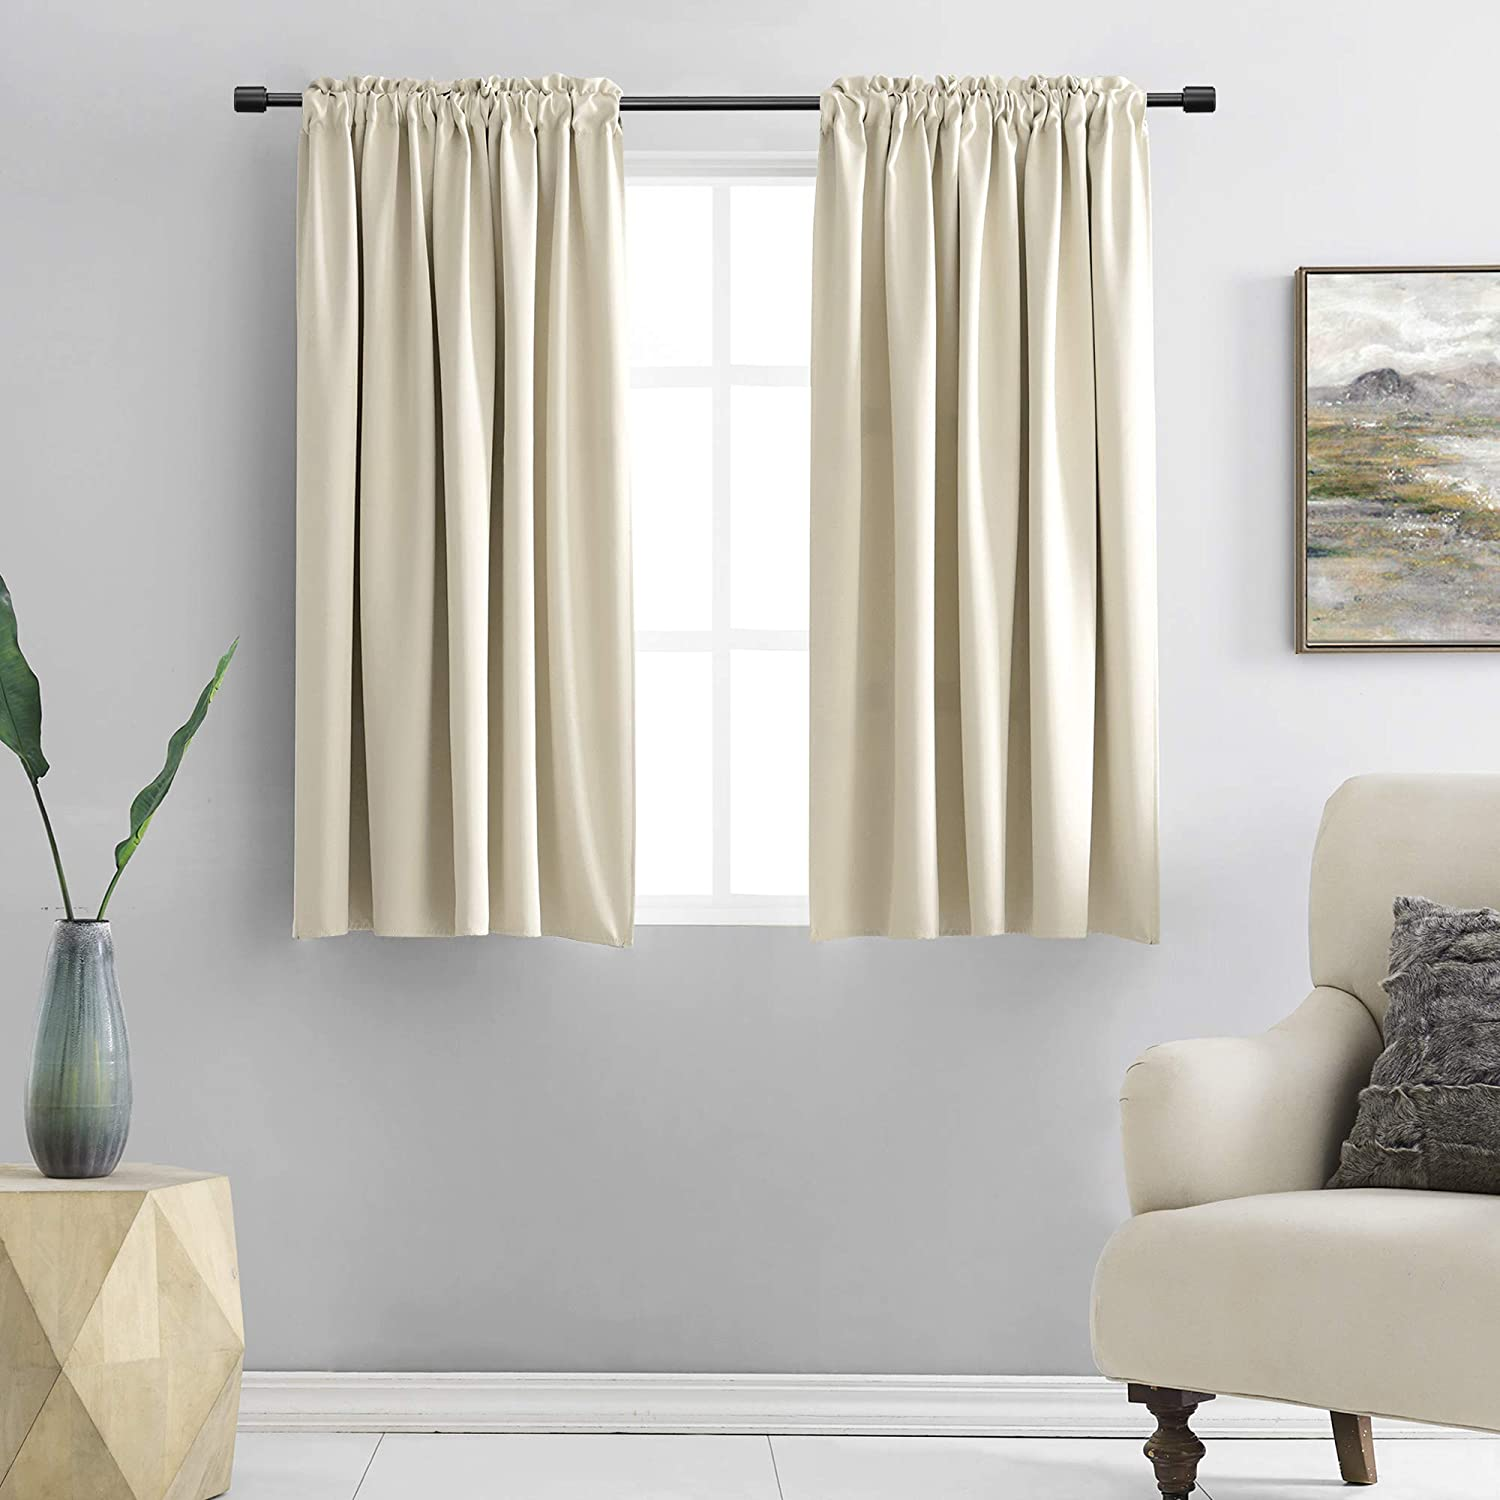 Amazon Com Donren Cream Beige Room Darkening Curtain Panels For Bedroom Thermal Insulated Rod Pocket Drapes For Living Room W 42 X L 45 Inch 2 Panels Home Kitchen